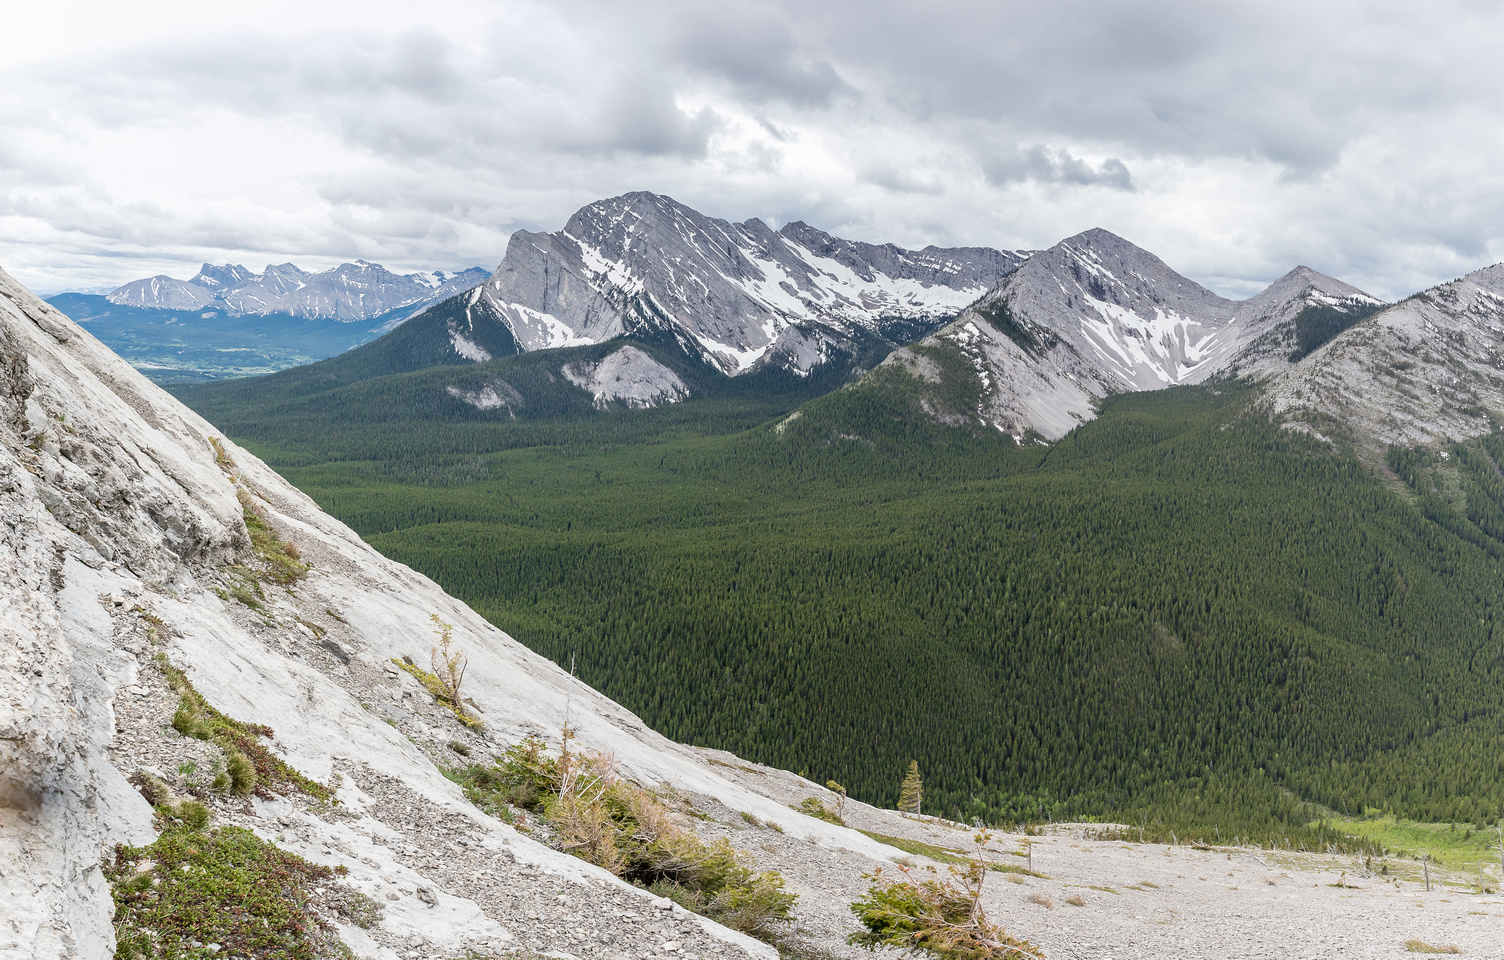 Looking across slabs I just ascended to Tecumseh Mountain.